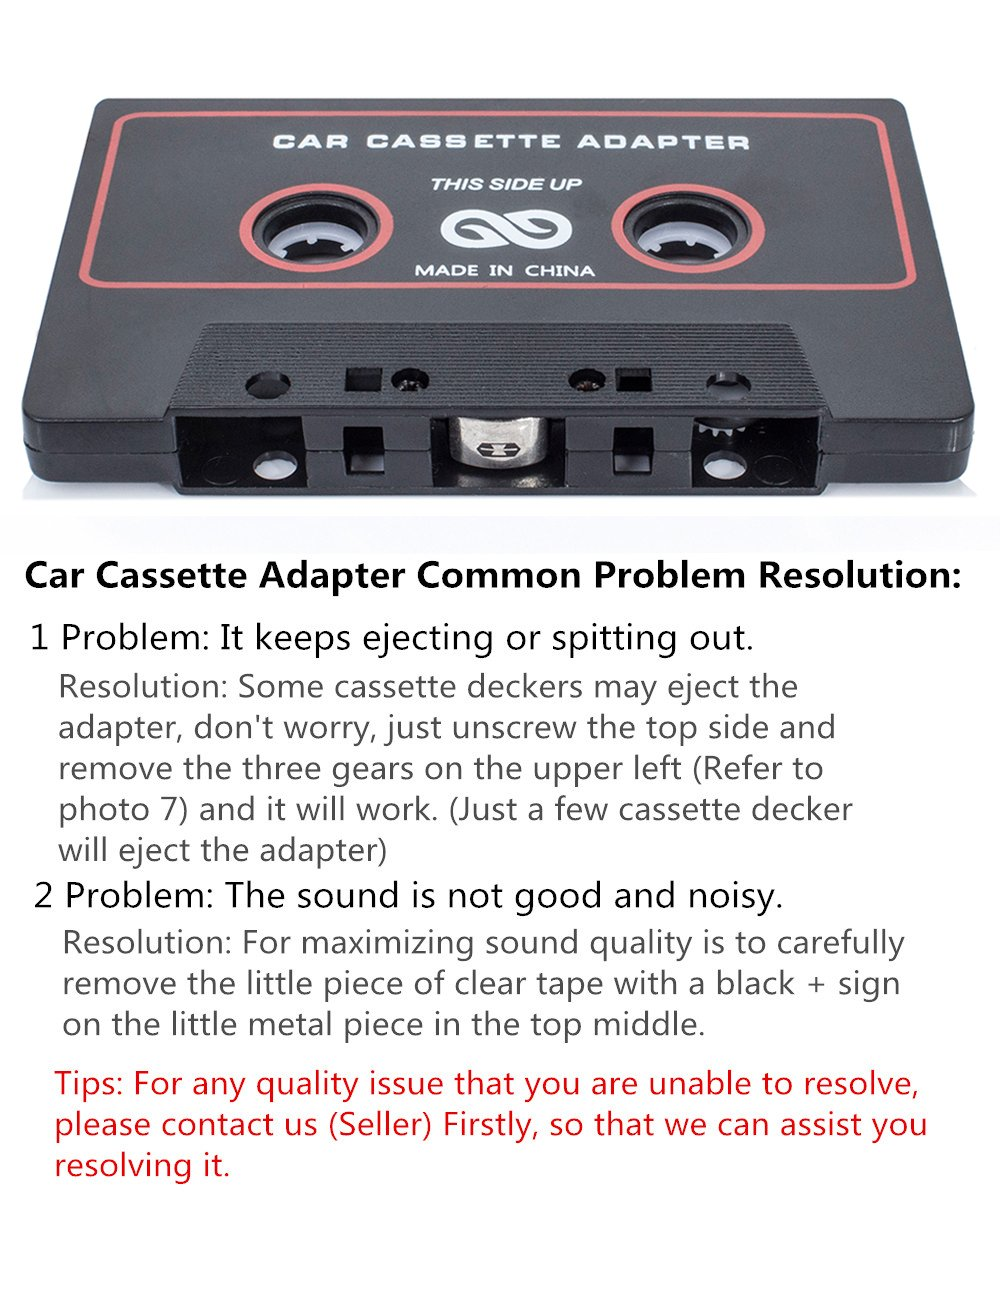 Toyota Corolla Repair Manual: Sound quality is bad only when playing tape